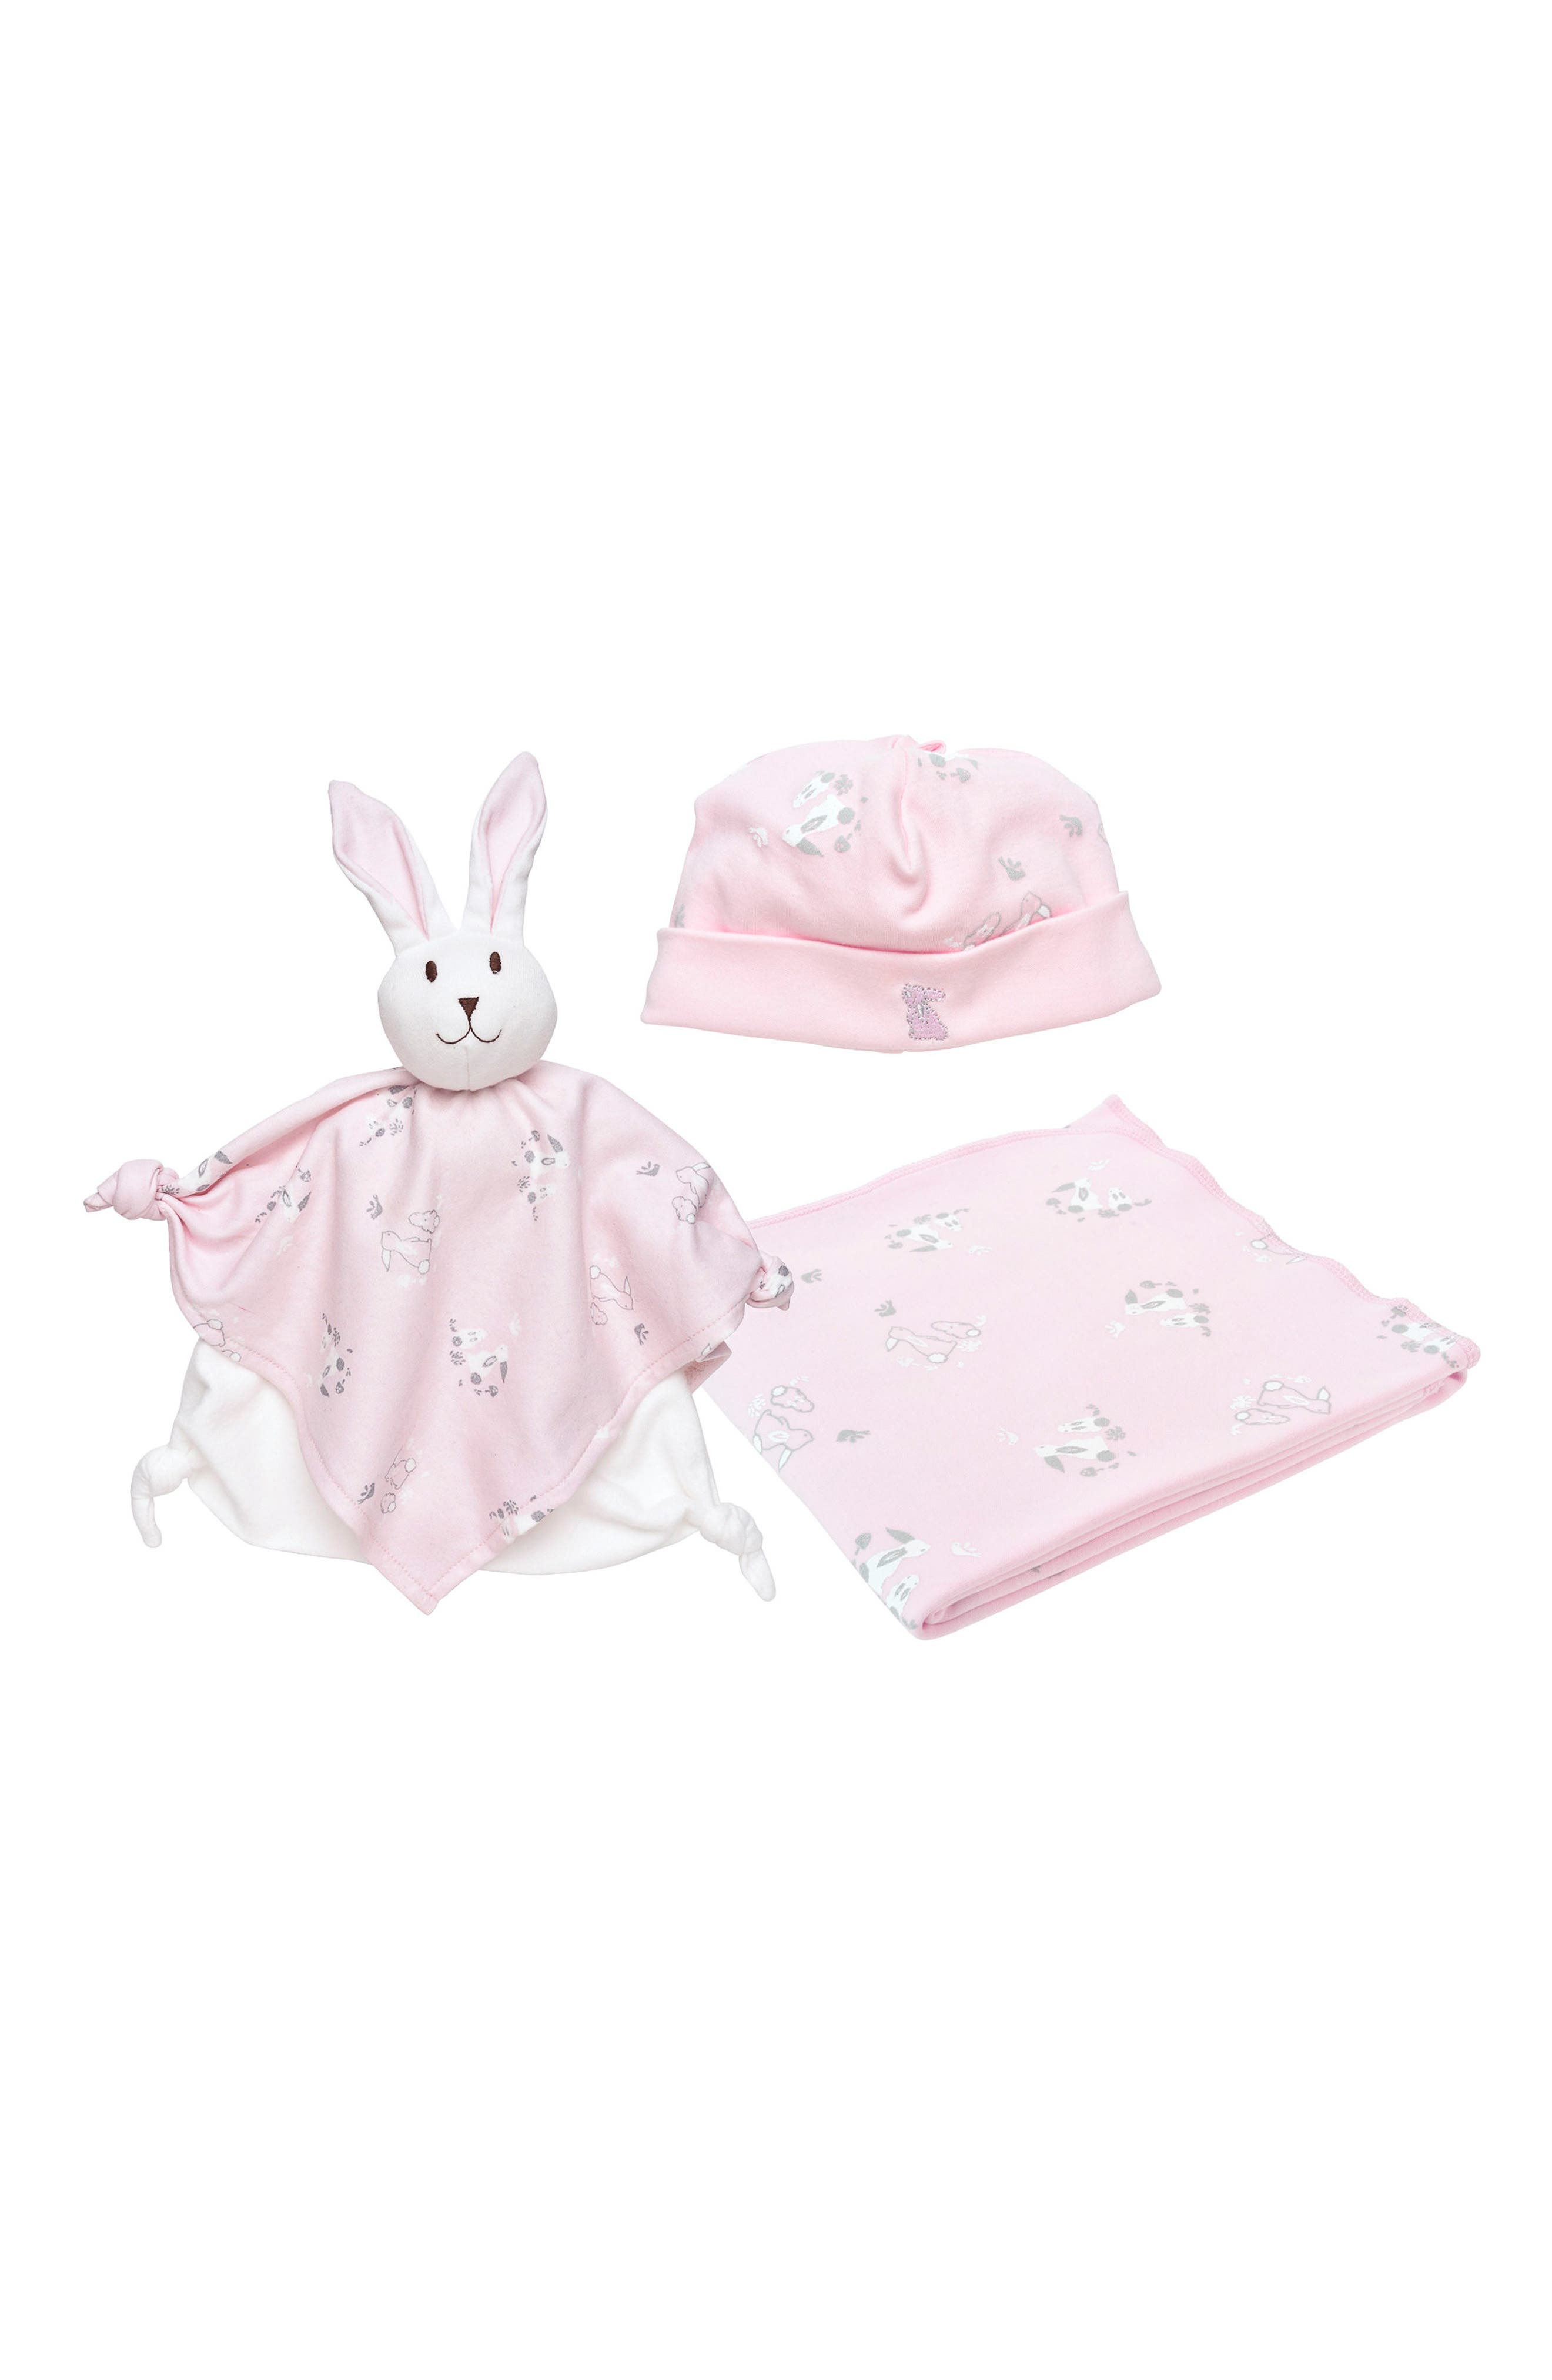 3-Piece Bunny Print Swaddle Blanket, Beanie & Lovey Toy Set,                             Main thumbnail 1, color,                             Pink